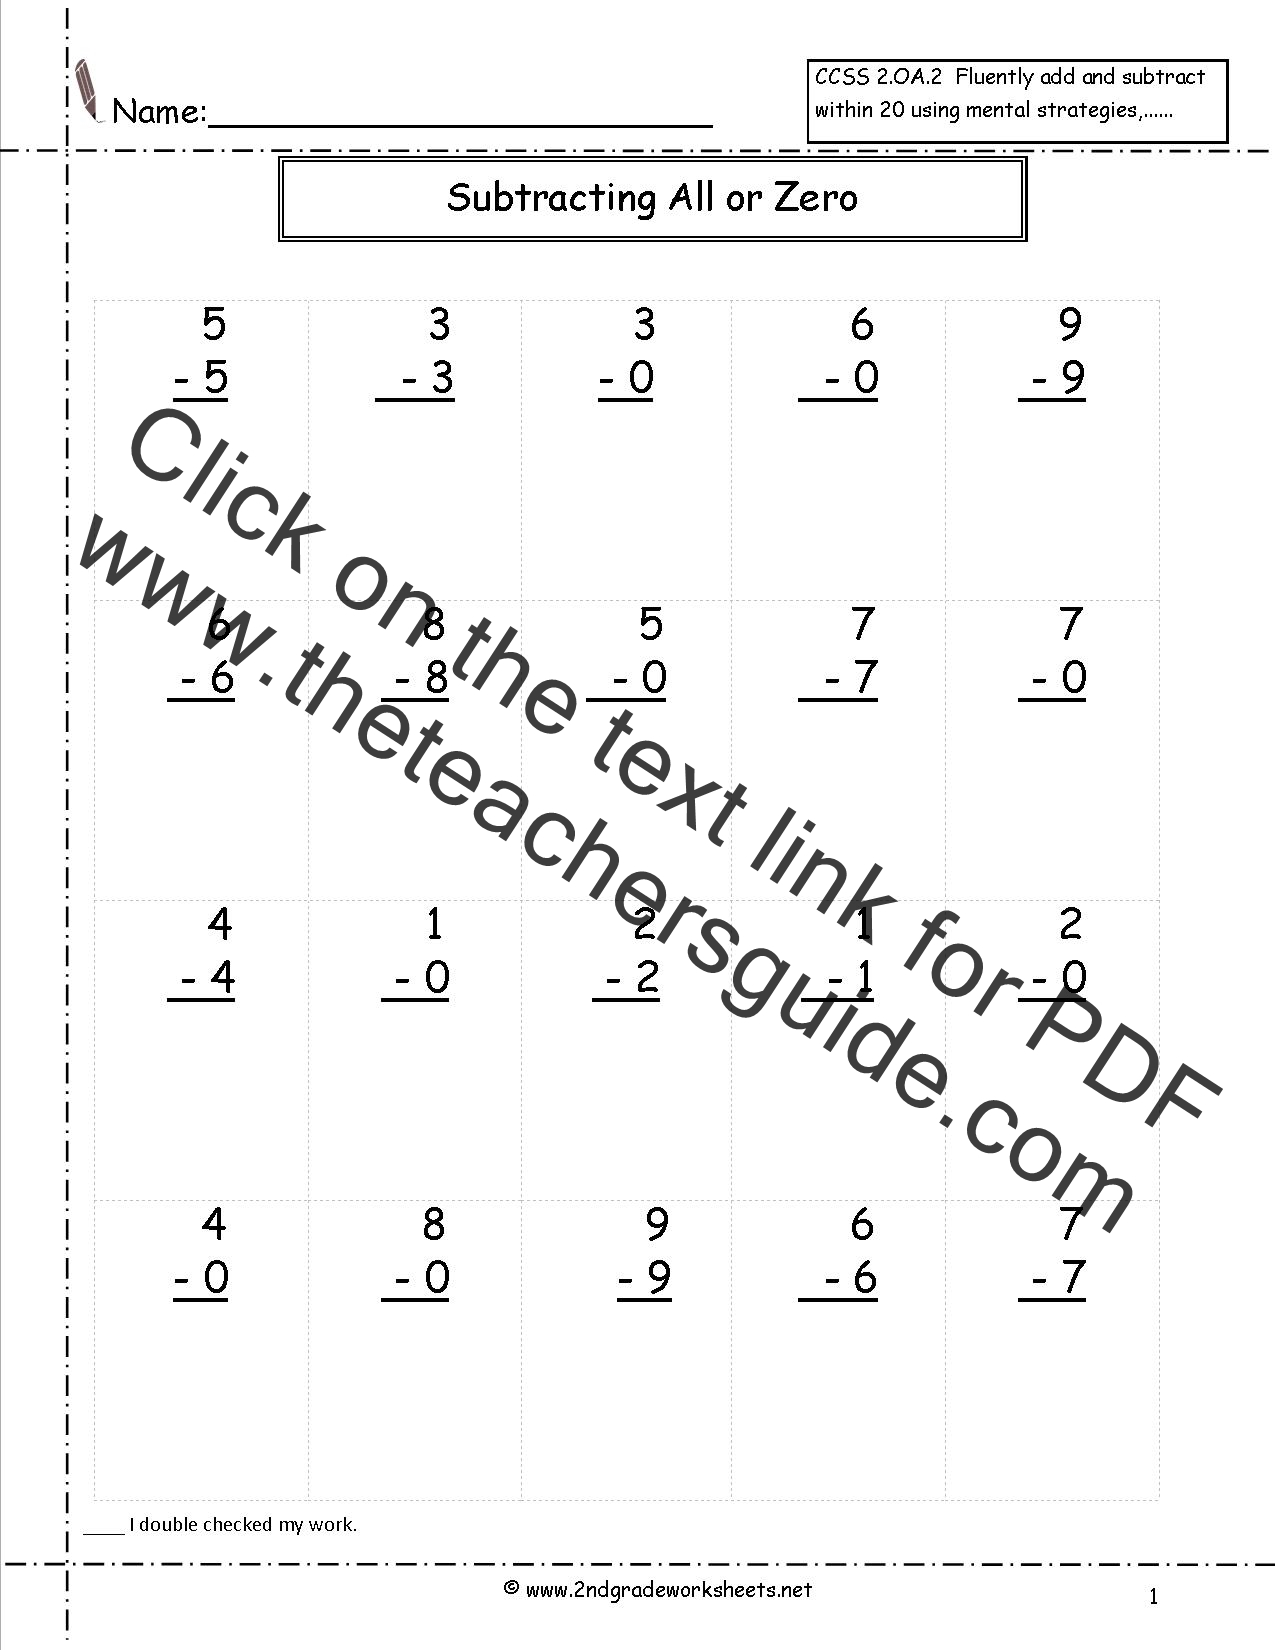 Worksheets Subtraction Facts Worksheets single digit subtraction fluency worksheets subtracting all or zero worksheet